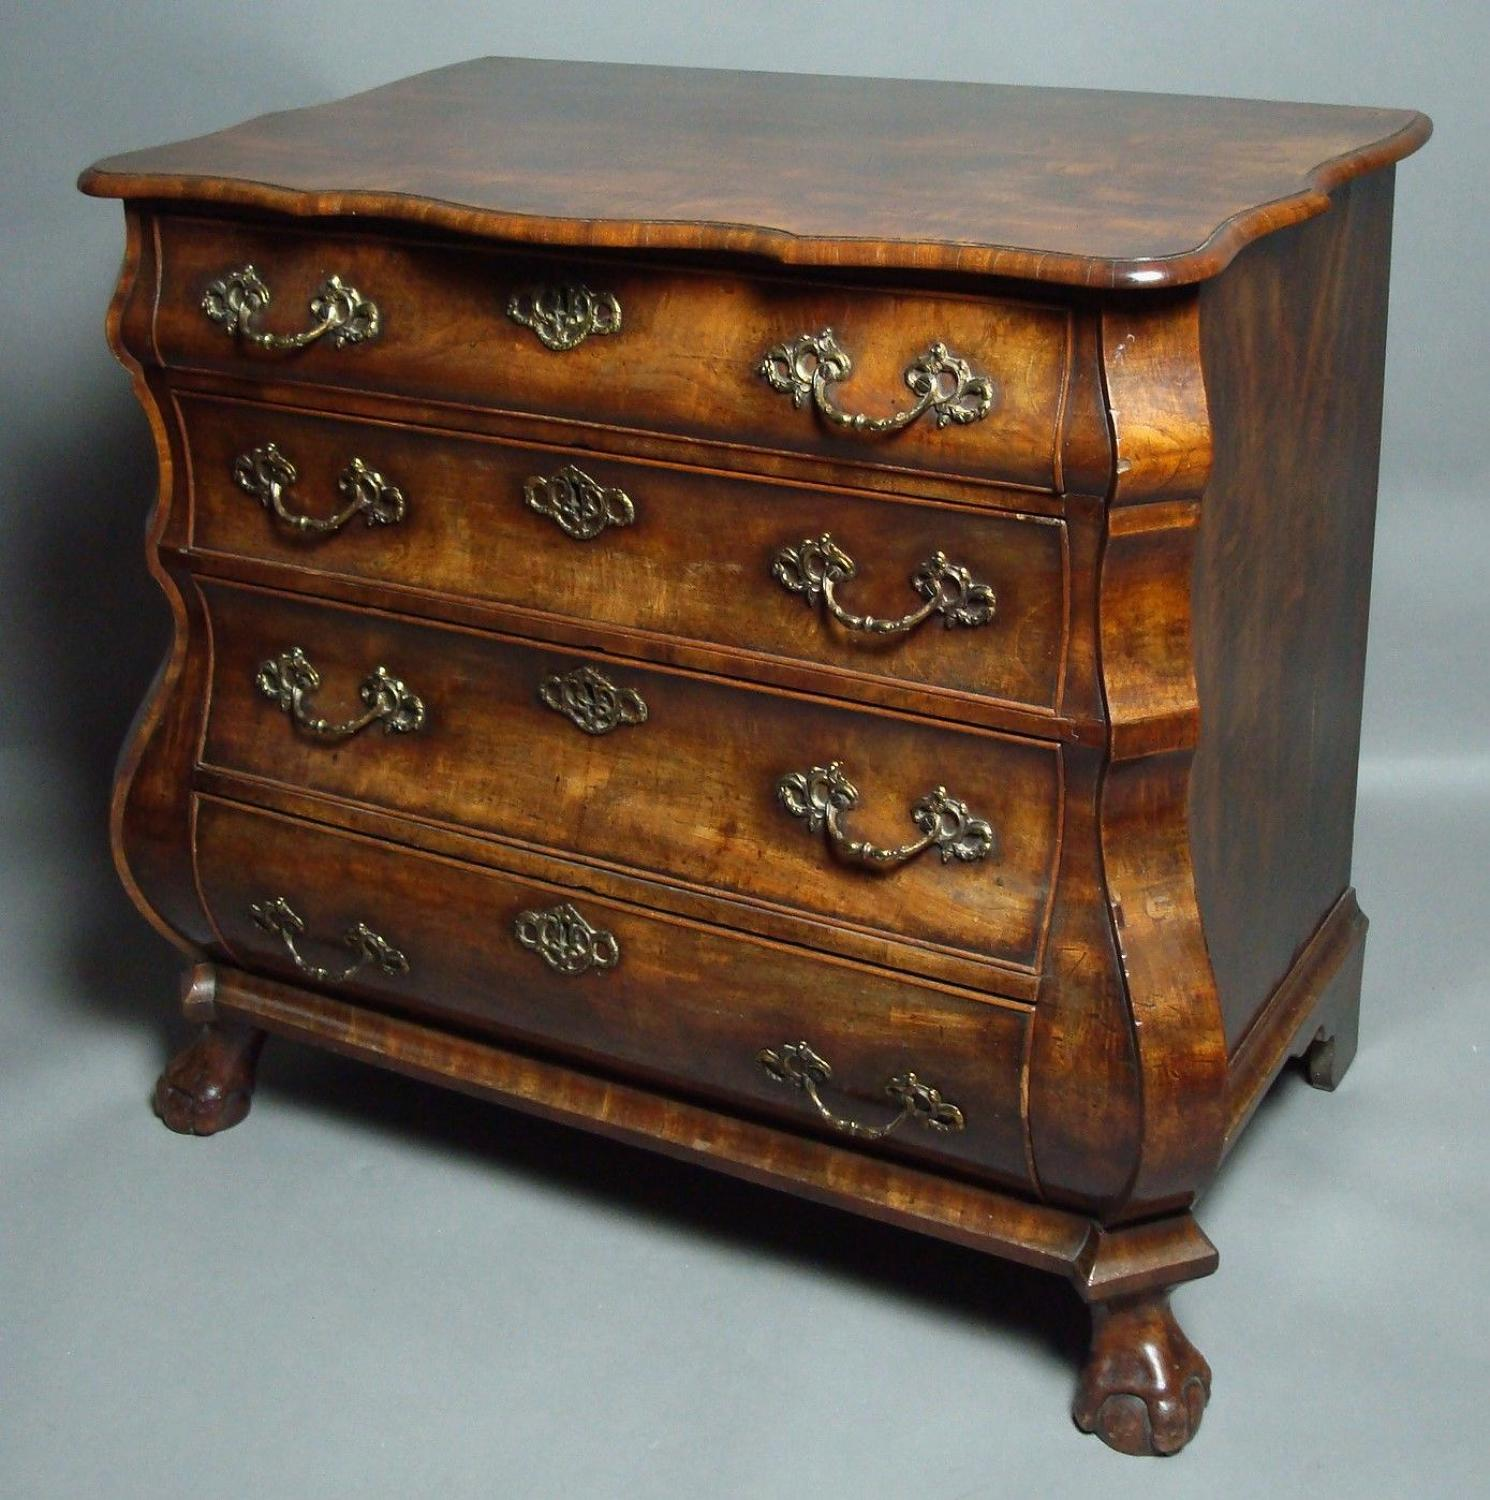 18th century Dutch bombe commode